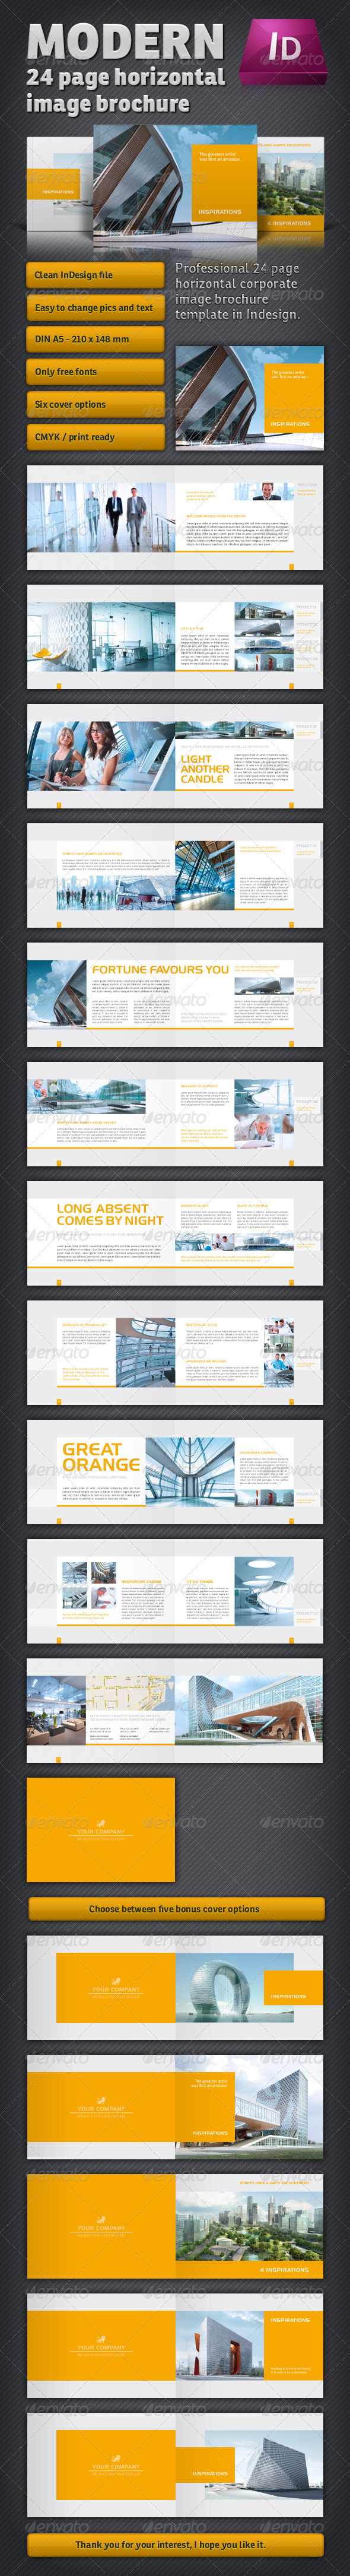 GraphicRiver Modern Image Brochure 2605851